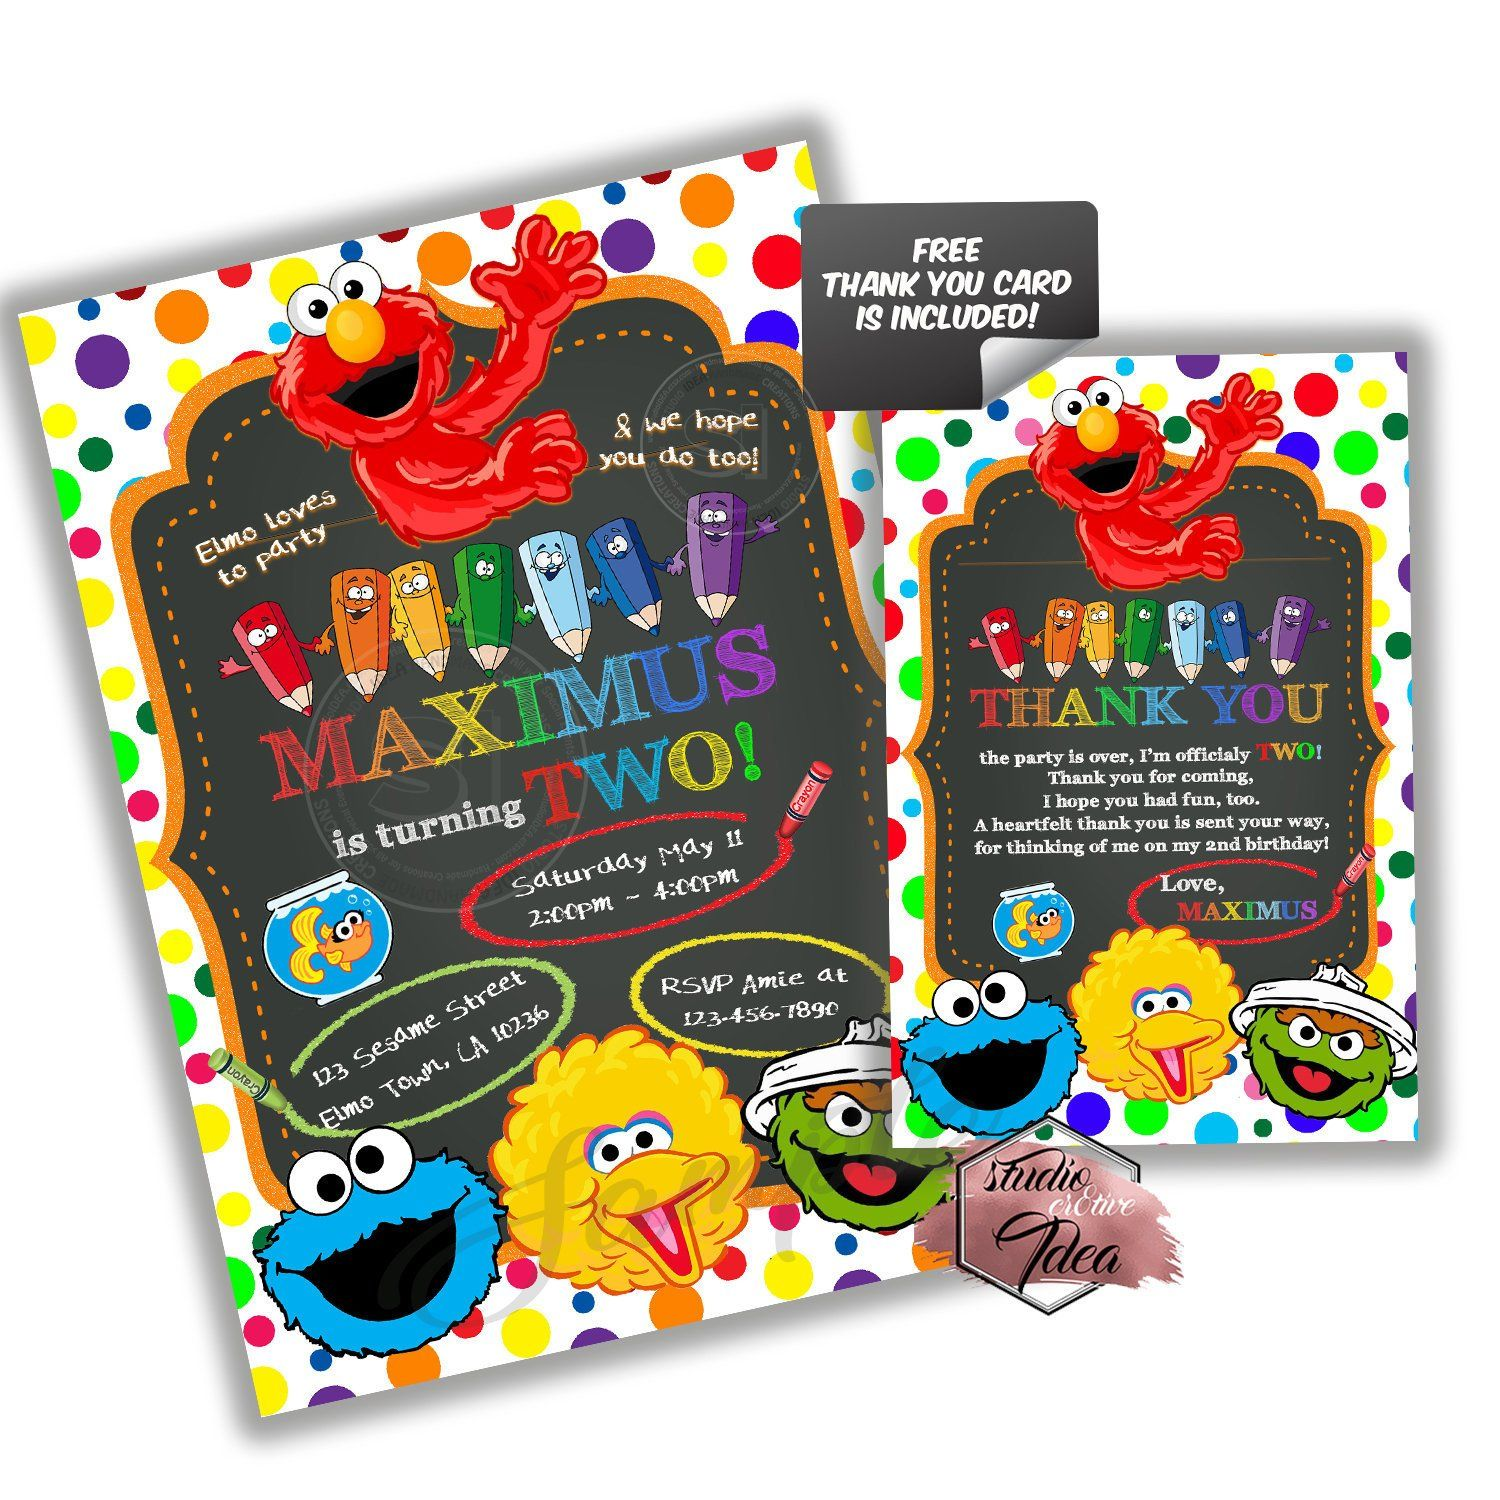 Custom Elmo Birthday Invitation With FREE Matching Thank You Card Printable And Friends Sesame Street Invitations Personalized